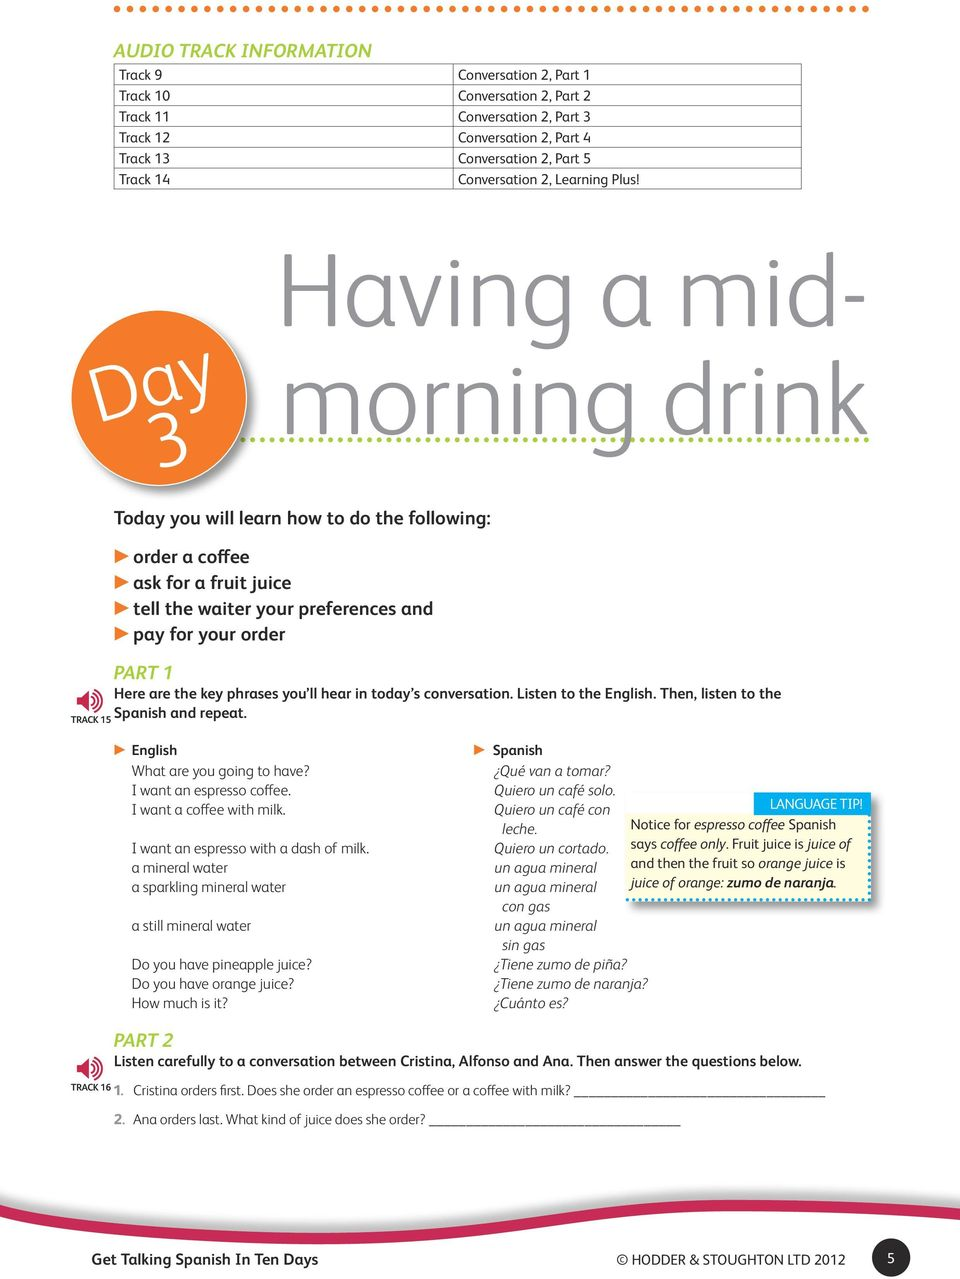 Day 3 Having a midmorning drink Track 15 Today you will learn how to do the following: order a coffee ask for a fruit juice tell the waiter your preferences and pay for your order Part 1 Here are the